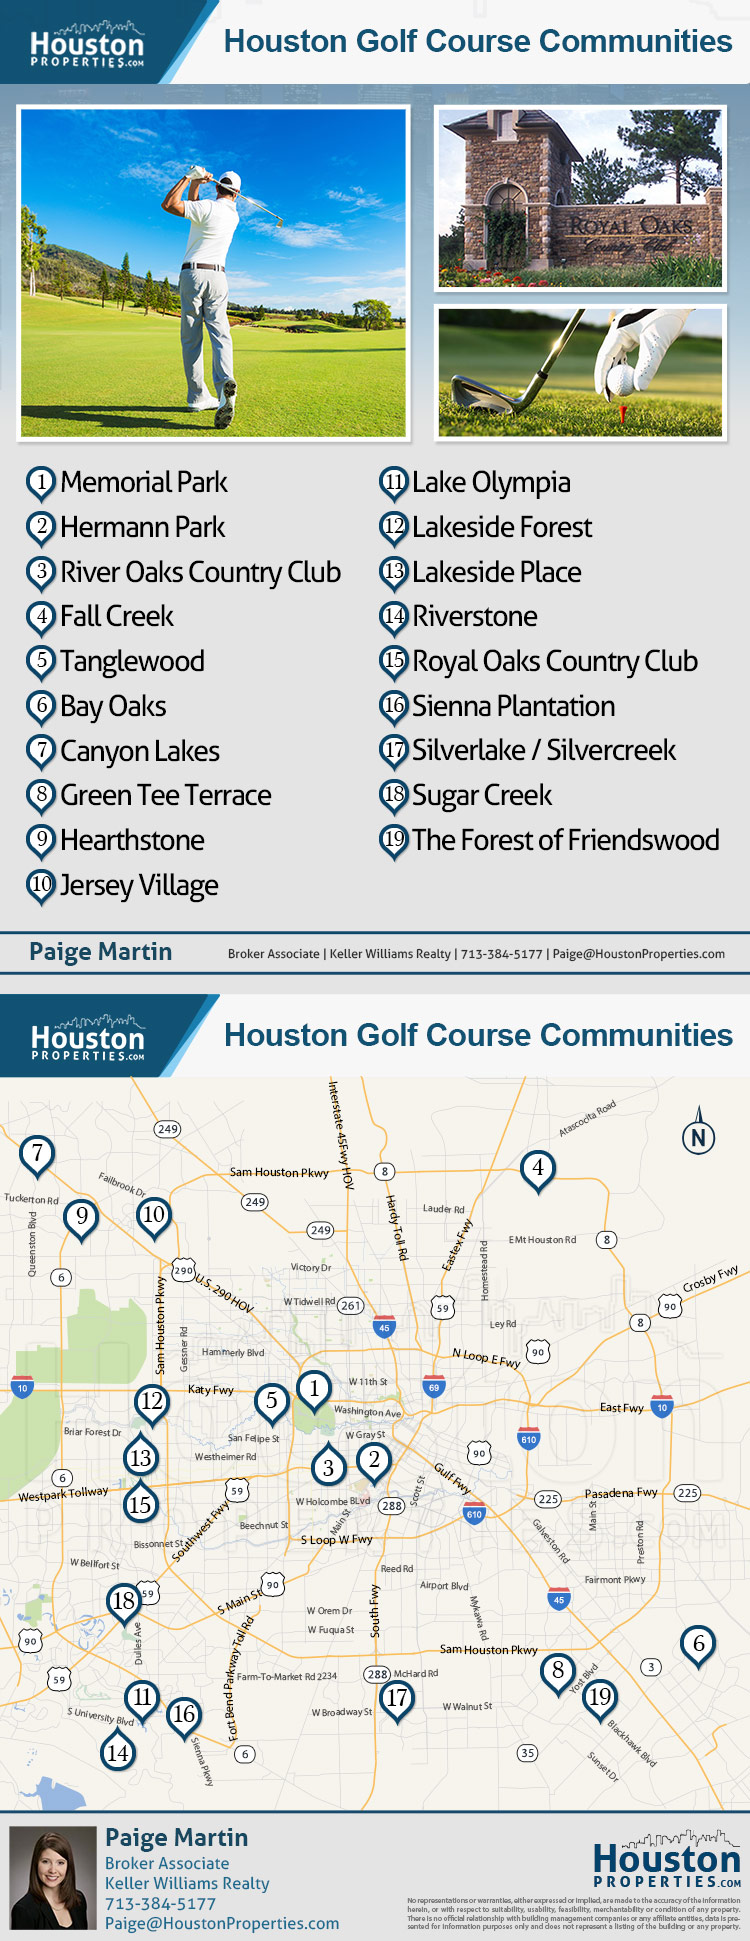 houston golf course communities map